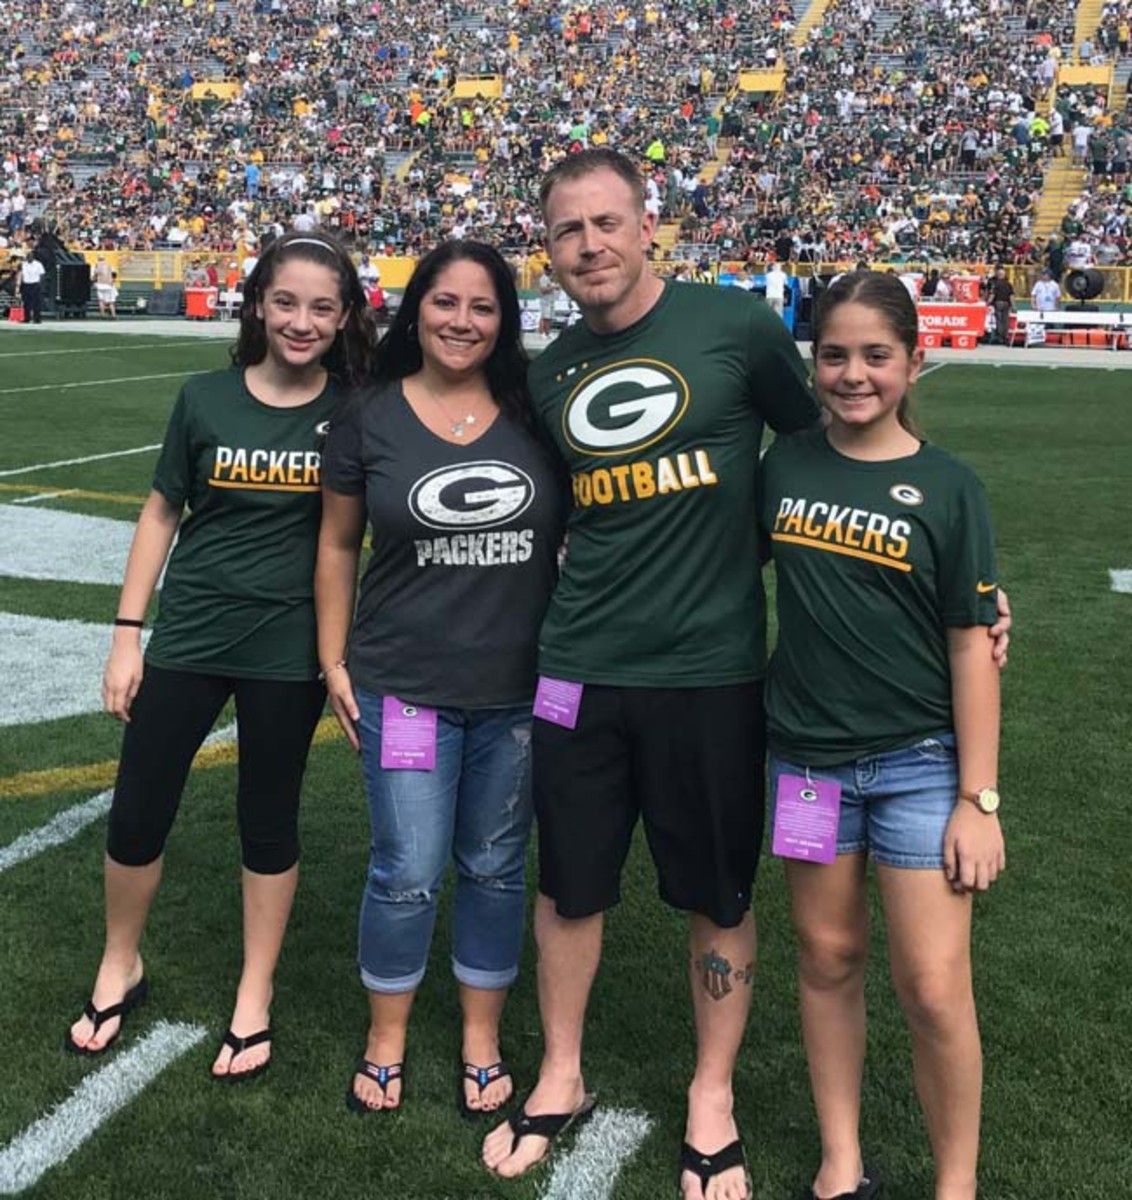 Purple Heart recipient Joshua Krueger is shown with his wife, Jill, and twin daughters, Kylie (left), and Ella (right). (Photo by Michelle Ratchman /Green Bay Packers)